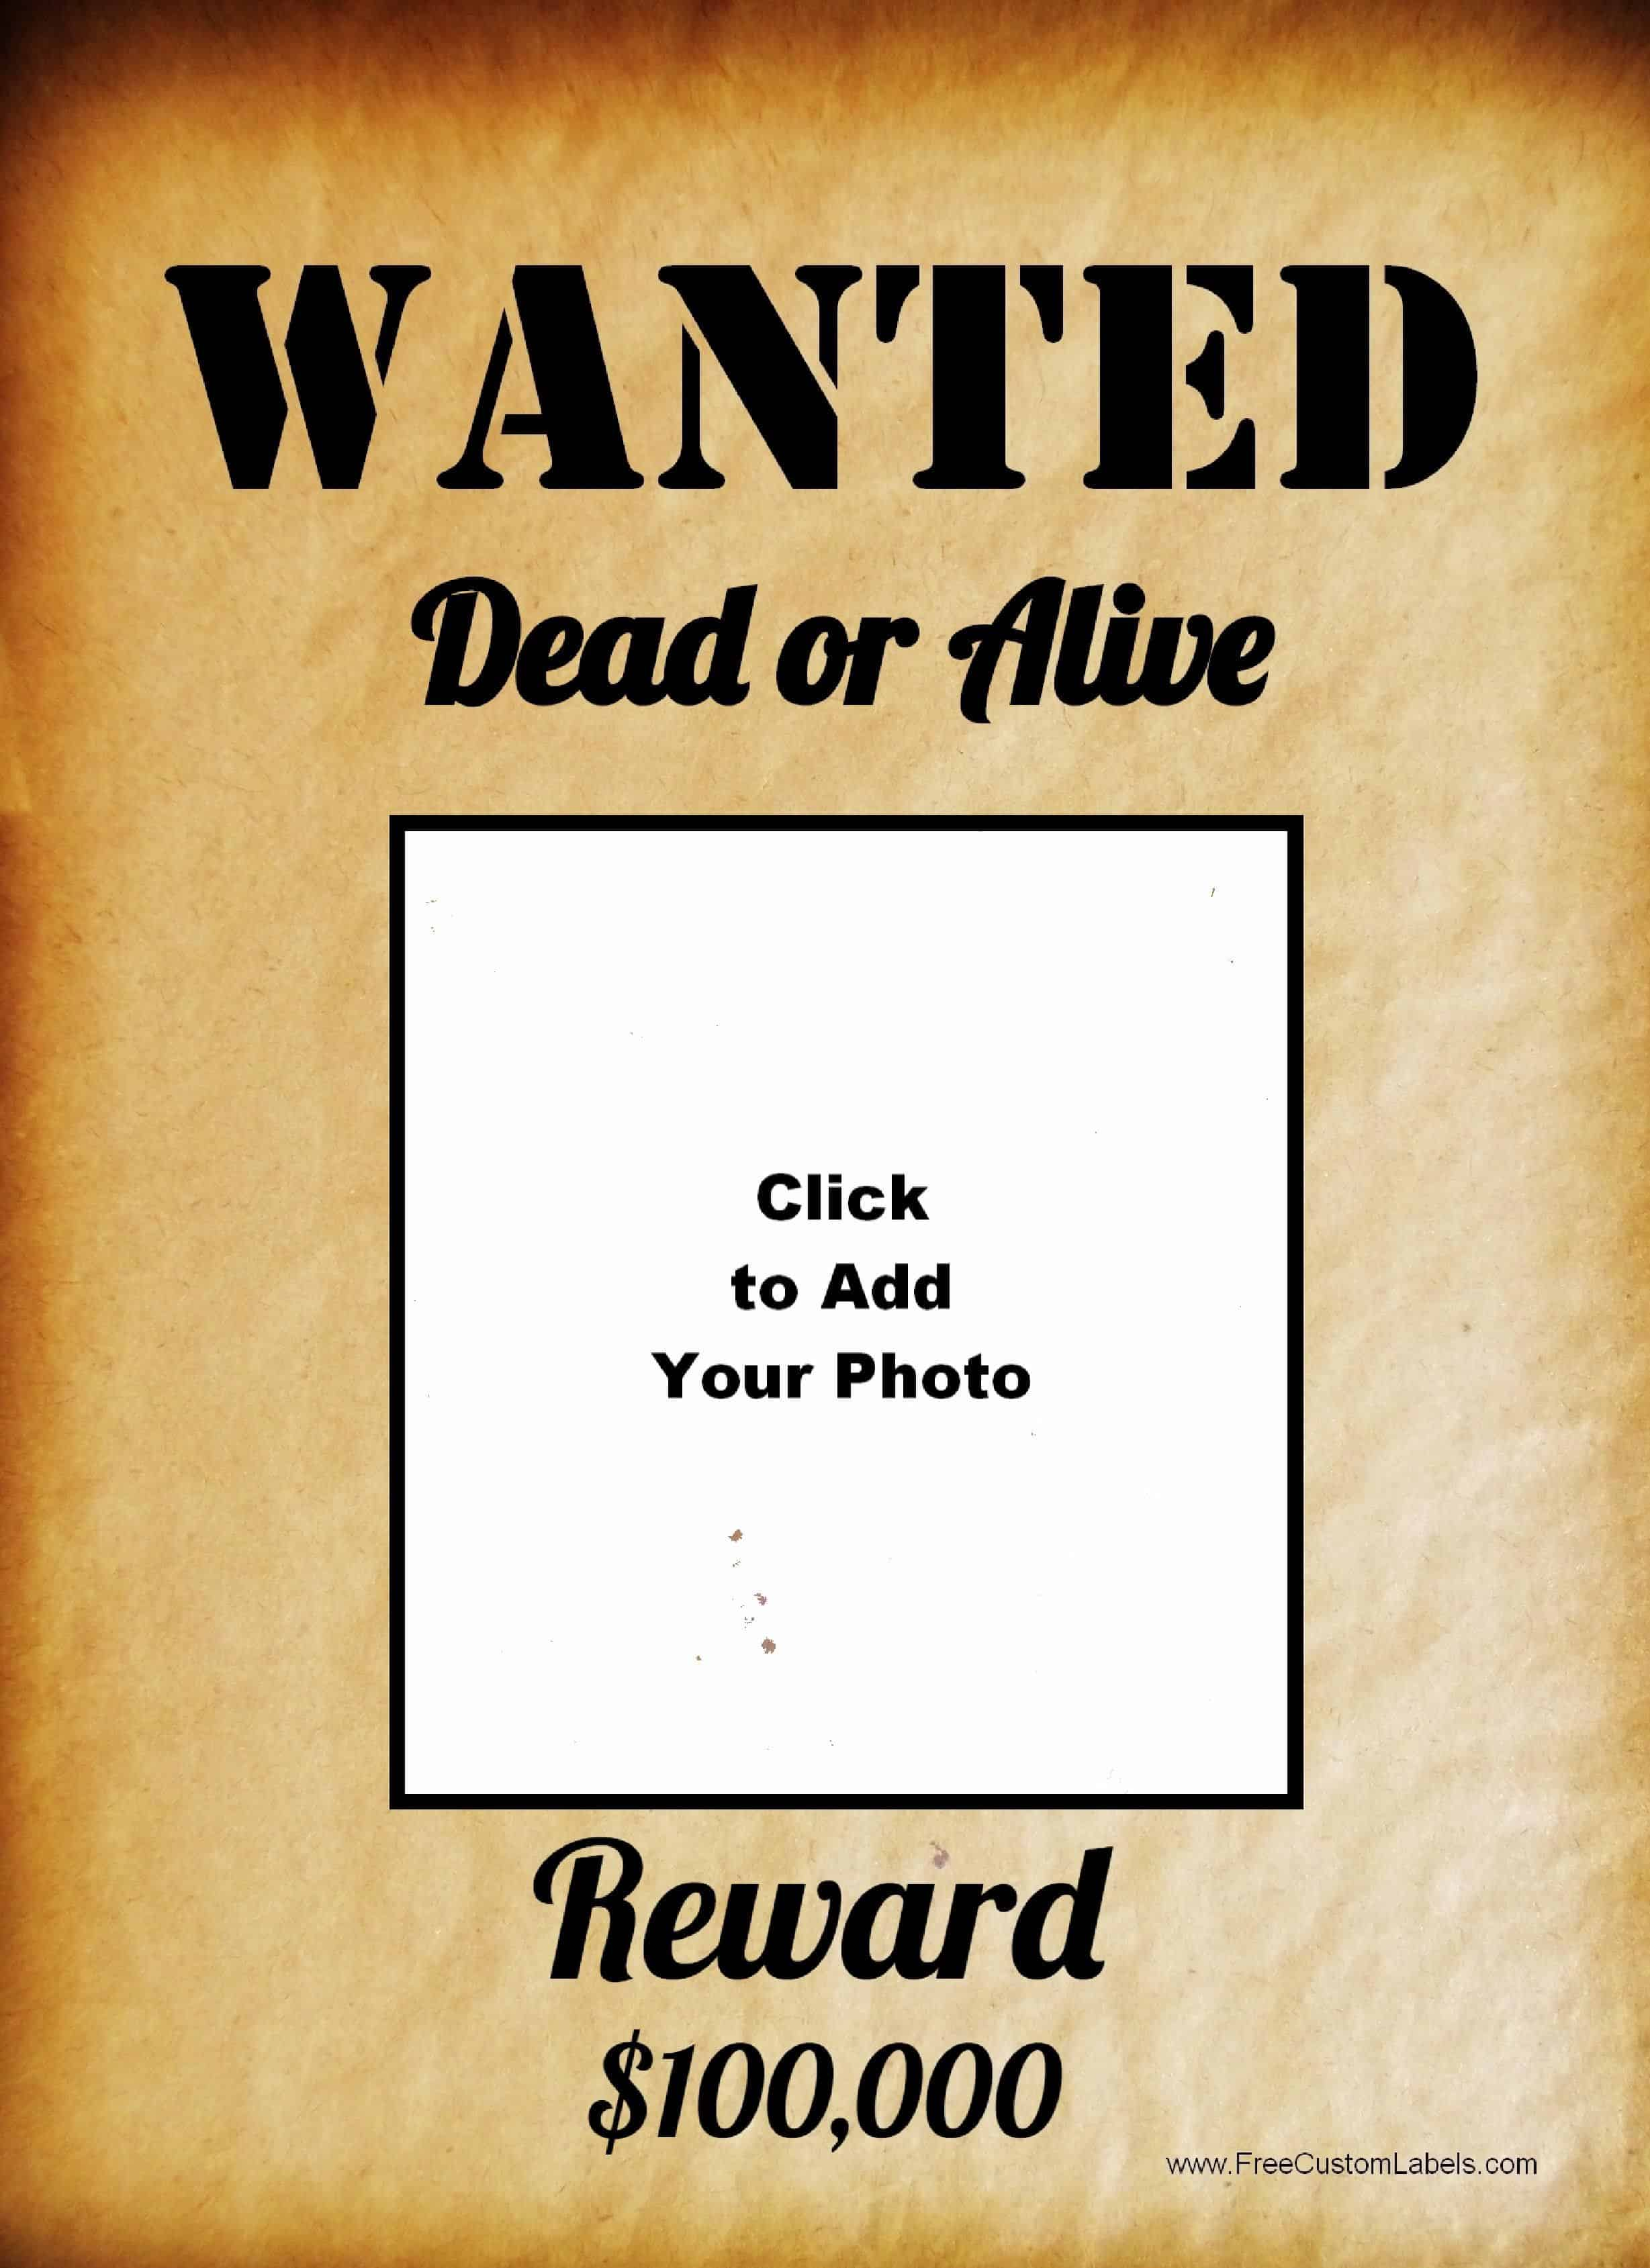 5th Grade MBES Blog: Microorganism Wanted Poster Due 10-9-15